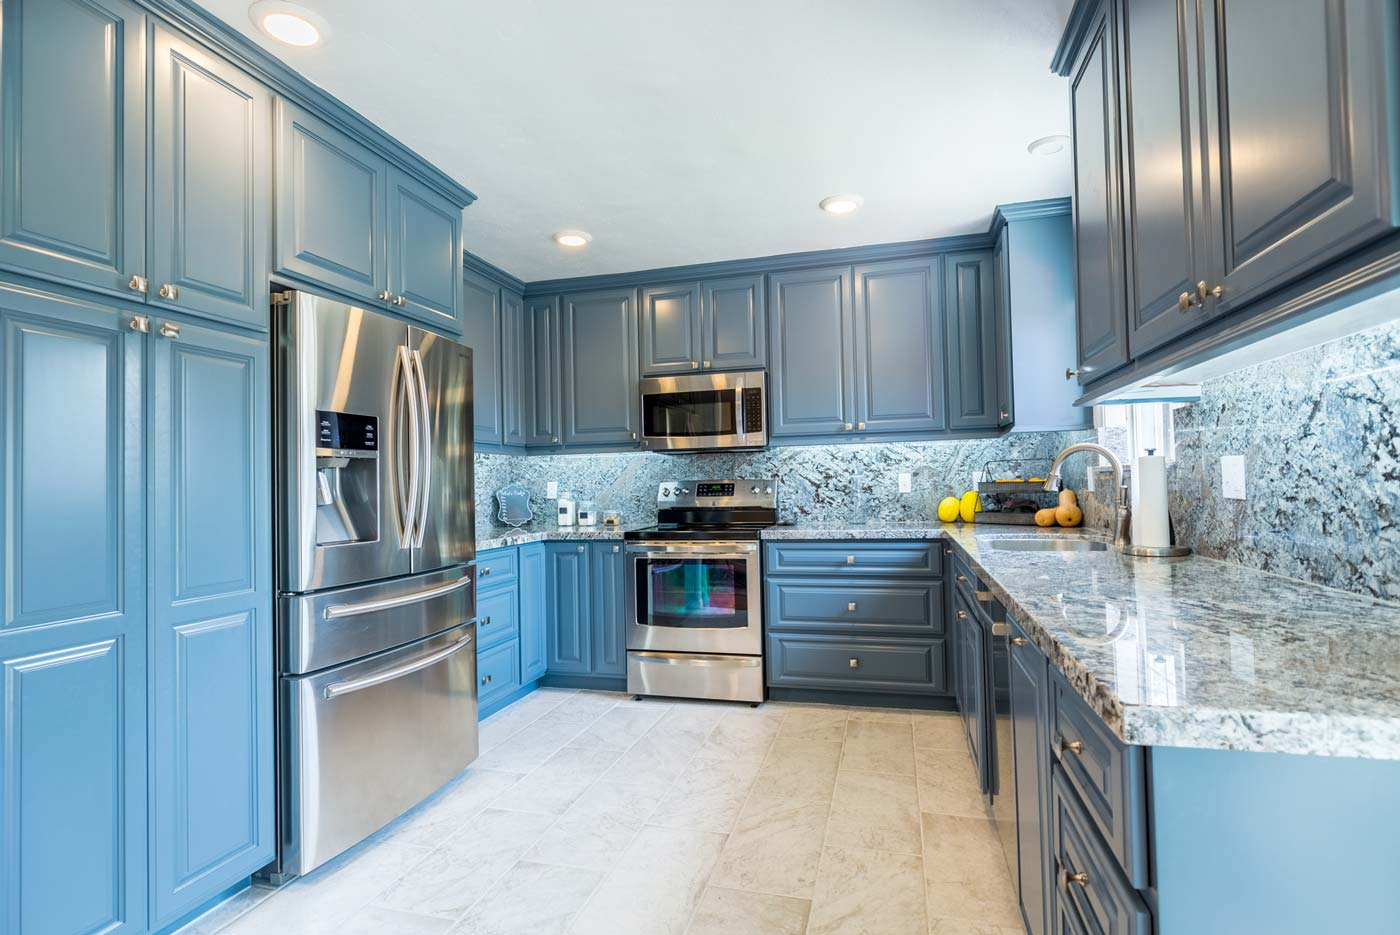 Water Damage to Complete Kitchen Remodel - 3D Environmental